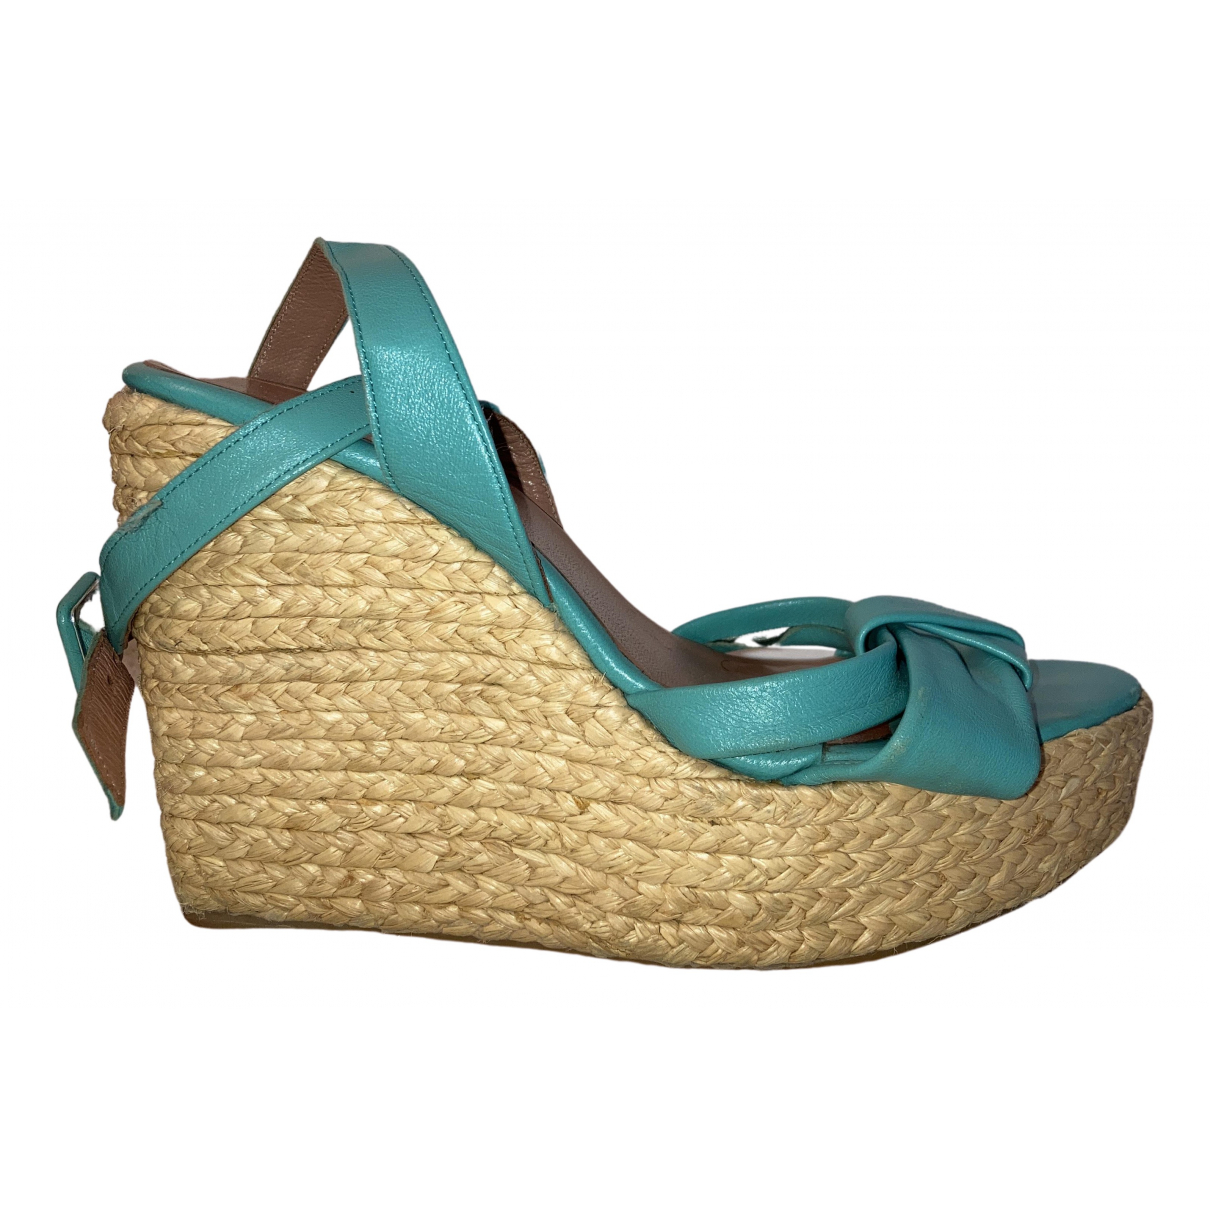 Robert Clergerie N Turquoise Leather Sandals for Women 37 EU